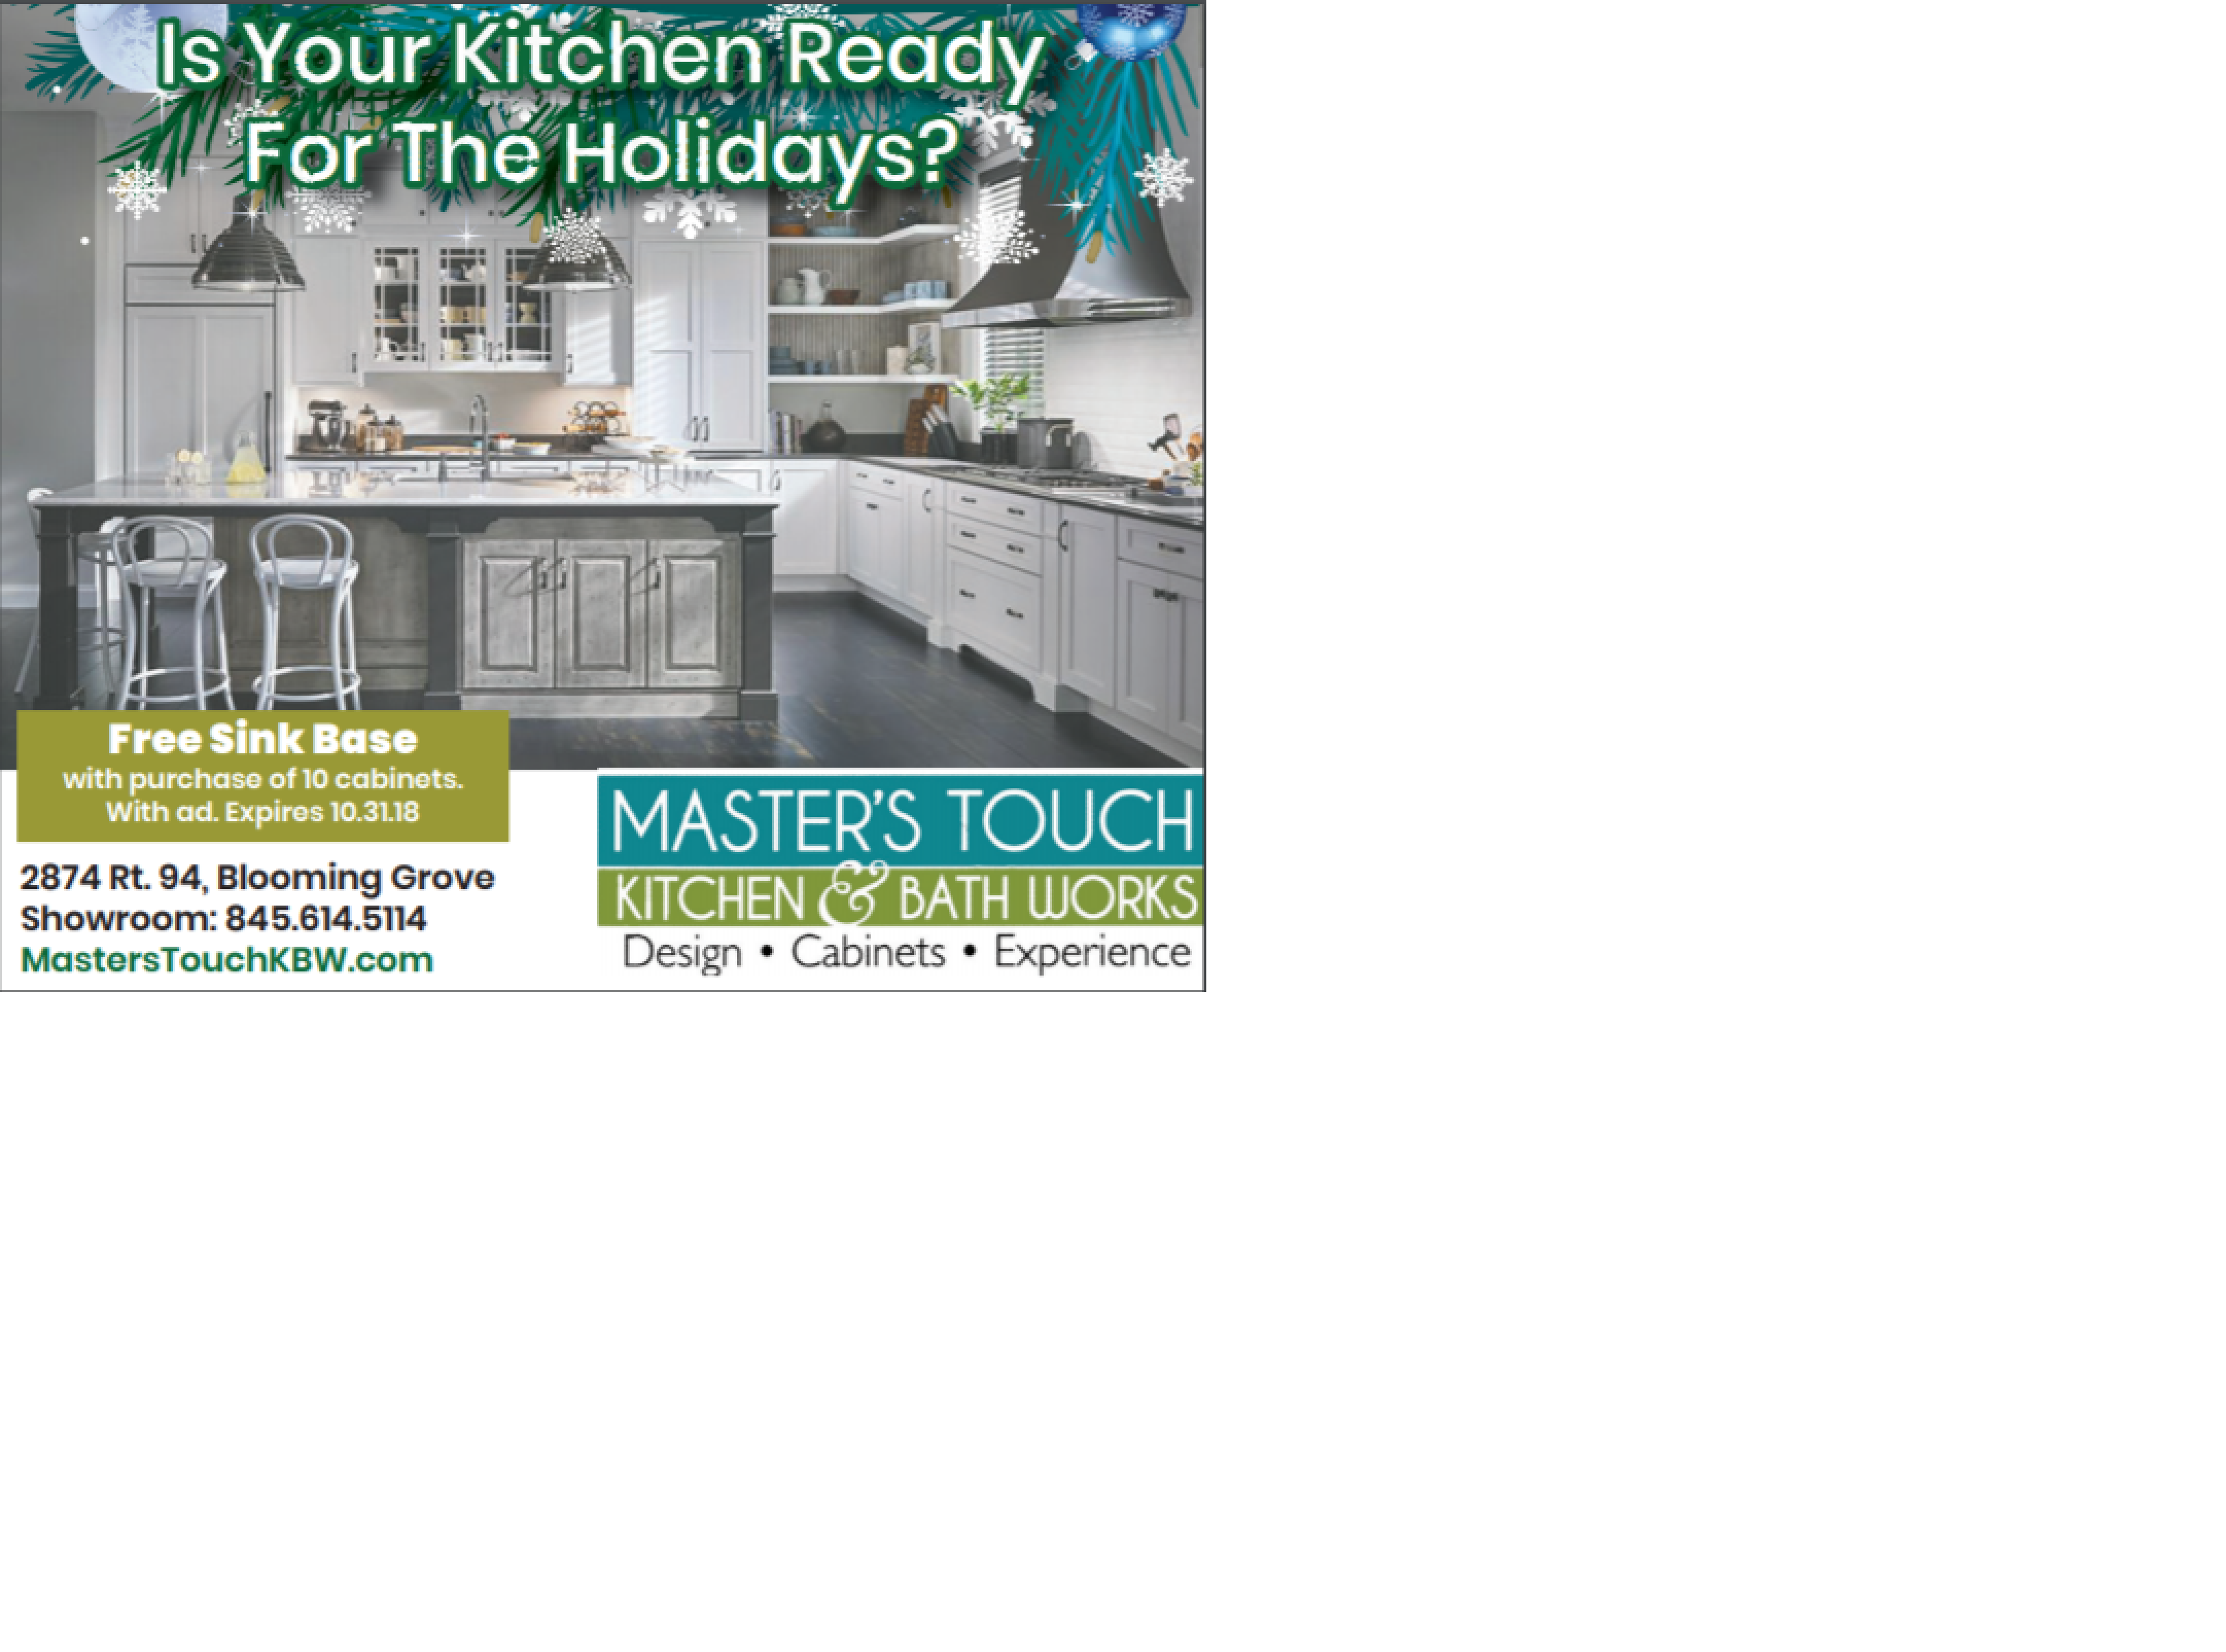 Free Design, Free Measurement, Free Sink Base, Free Paint, AND money off your Cabinetry!